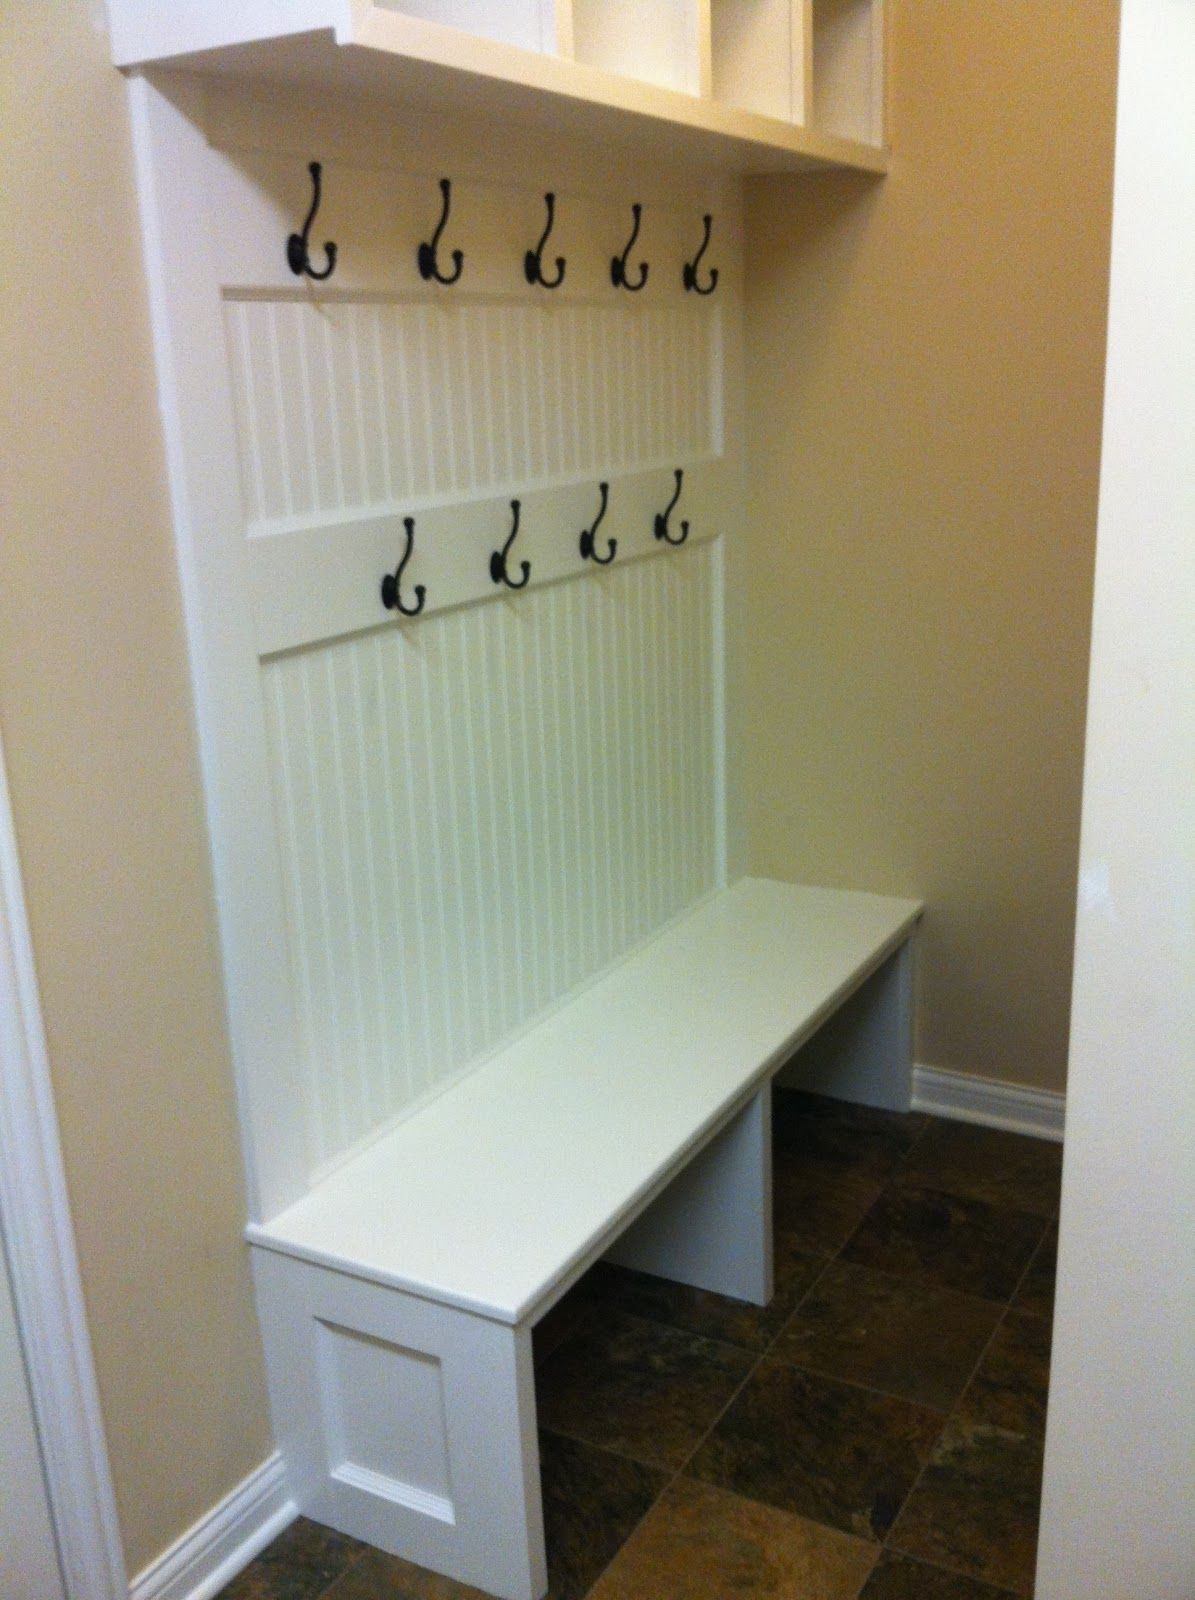 The Britton House Mudroom Bench Mudroom Bench Plans Mud Room Storage Mudroom Bench